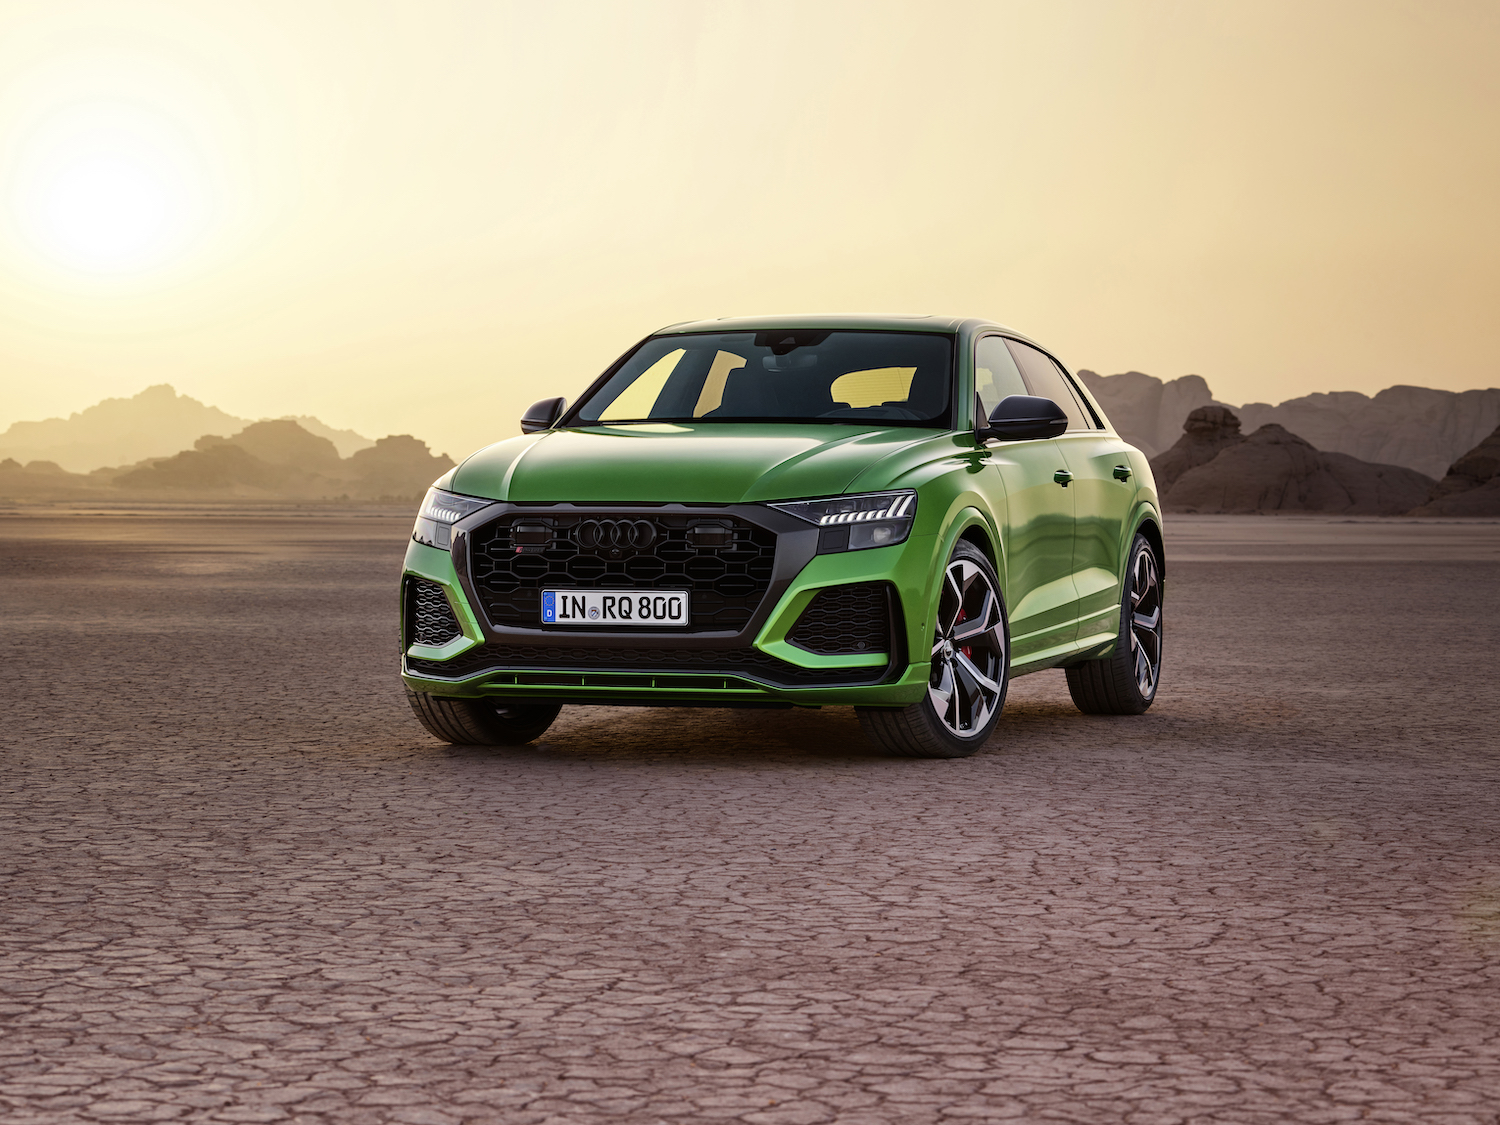 The 2020 Audi RS Q8 is your 591-horsepower mild-hybrid monster SUV thumbnail